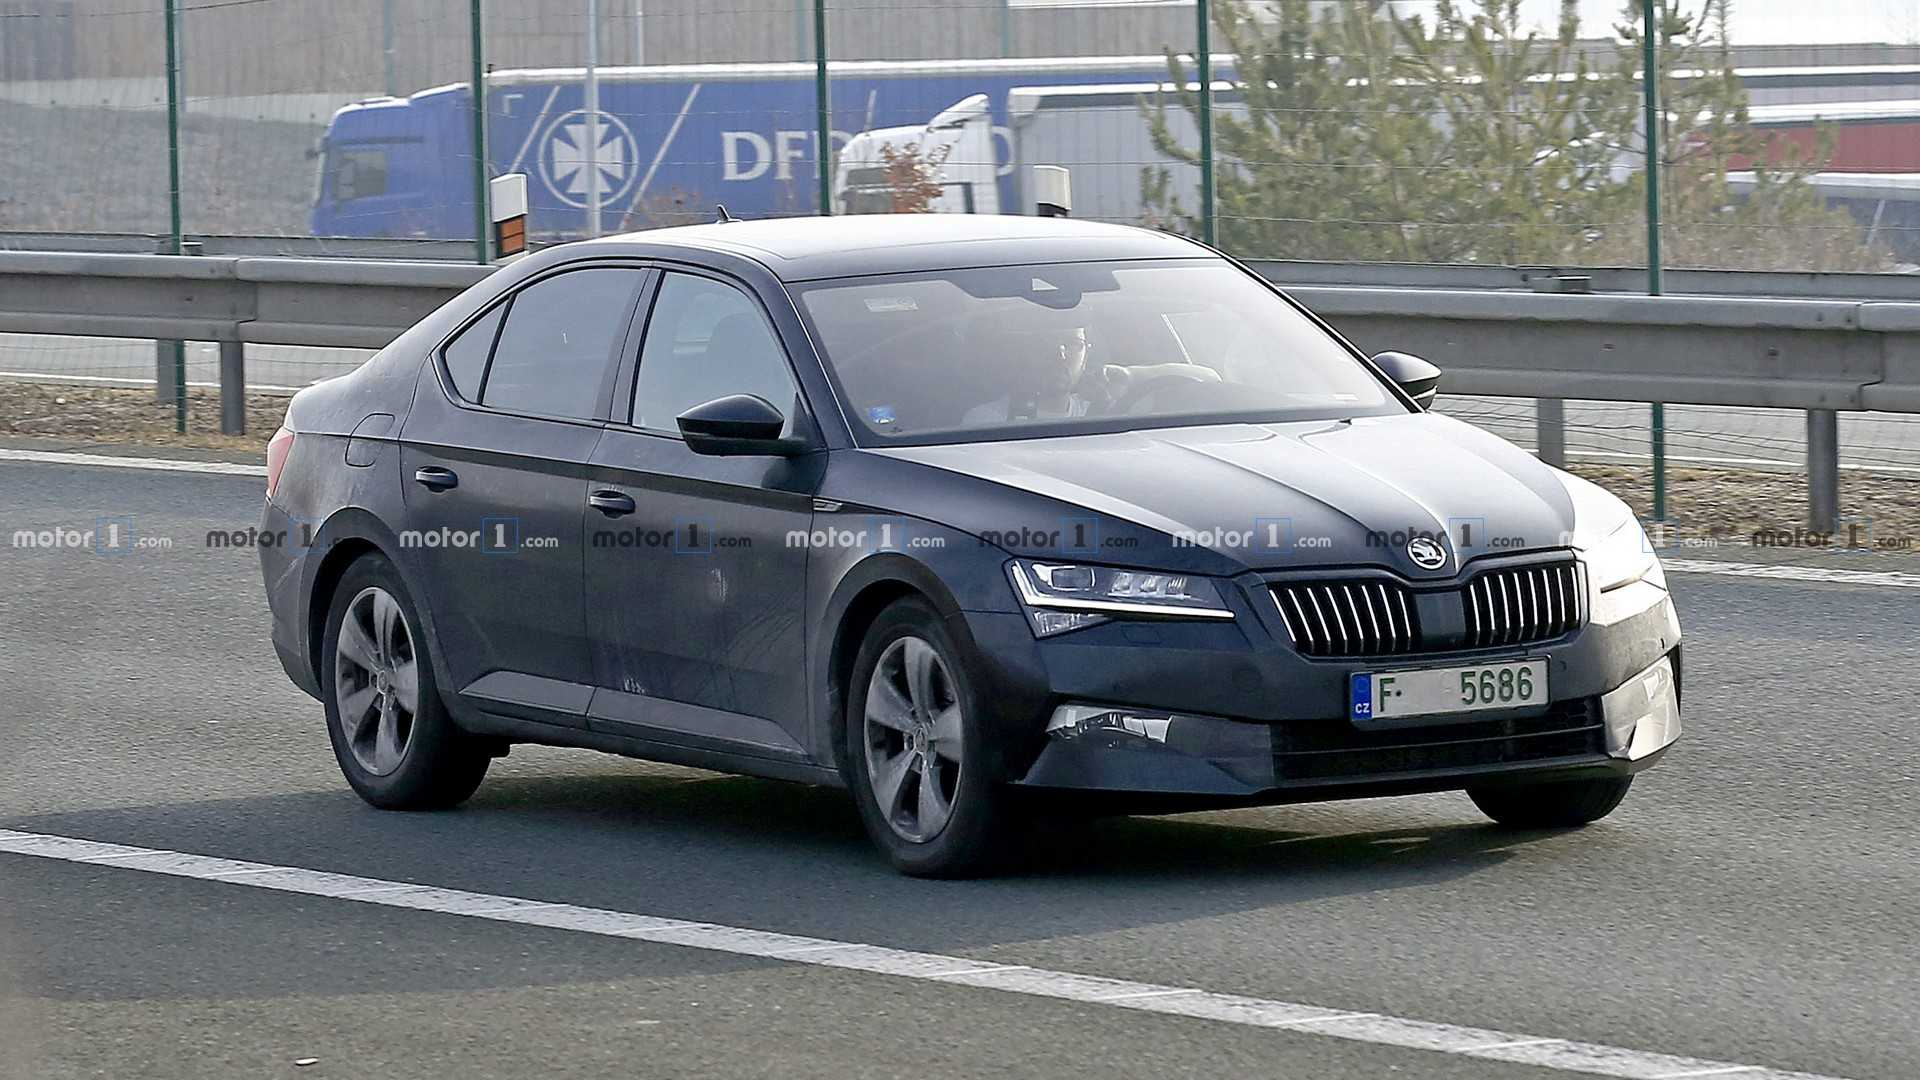 41 The Best Spy Shots Skoda Superb New Model And Performance